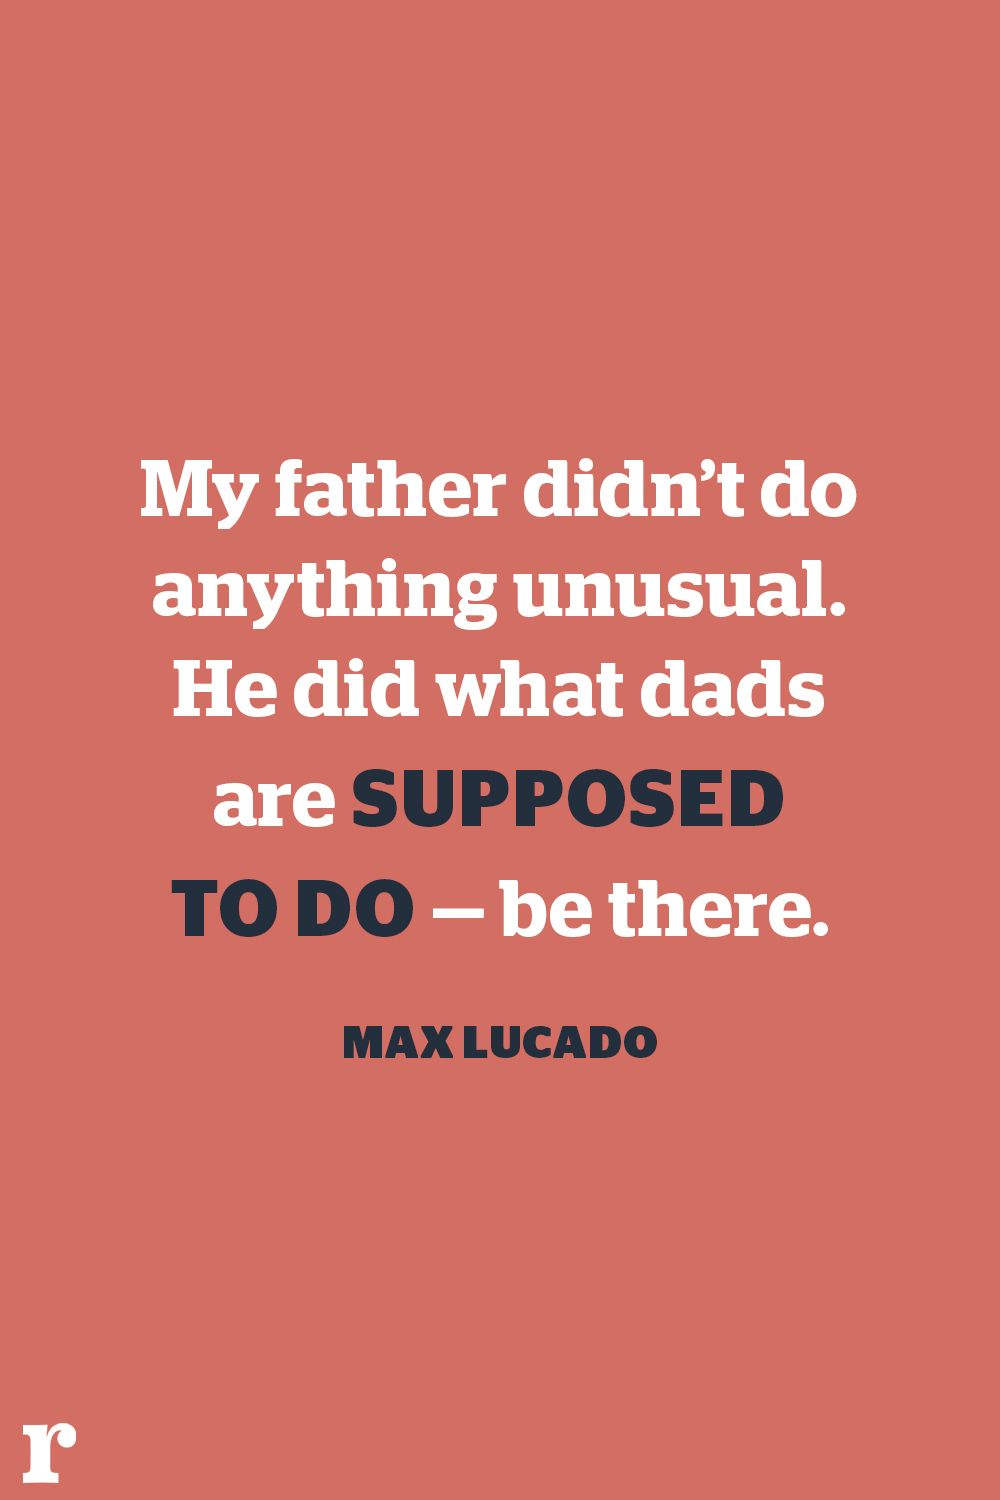 Image of: Daughter 15 Best Fathers Day Quotes To Share With Dad Meaningful Fatherhood Quotes Redbook 15 Best Fathers Day Quotes To Share With Dad Meaningful